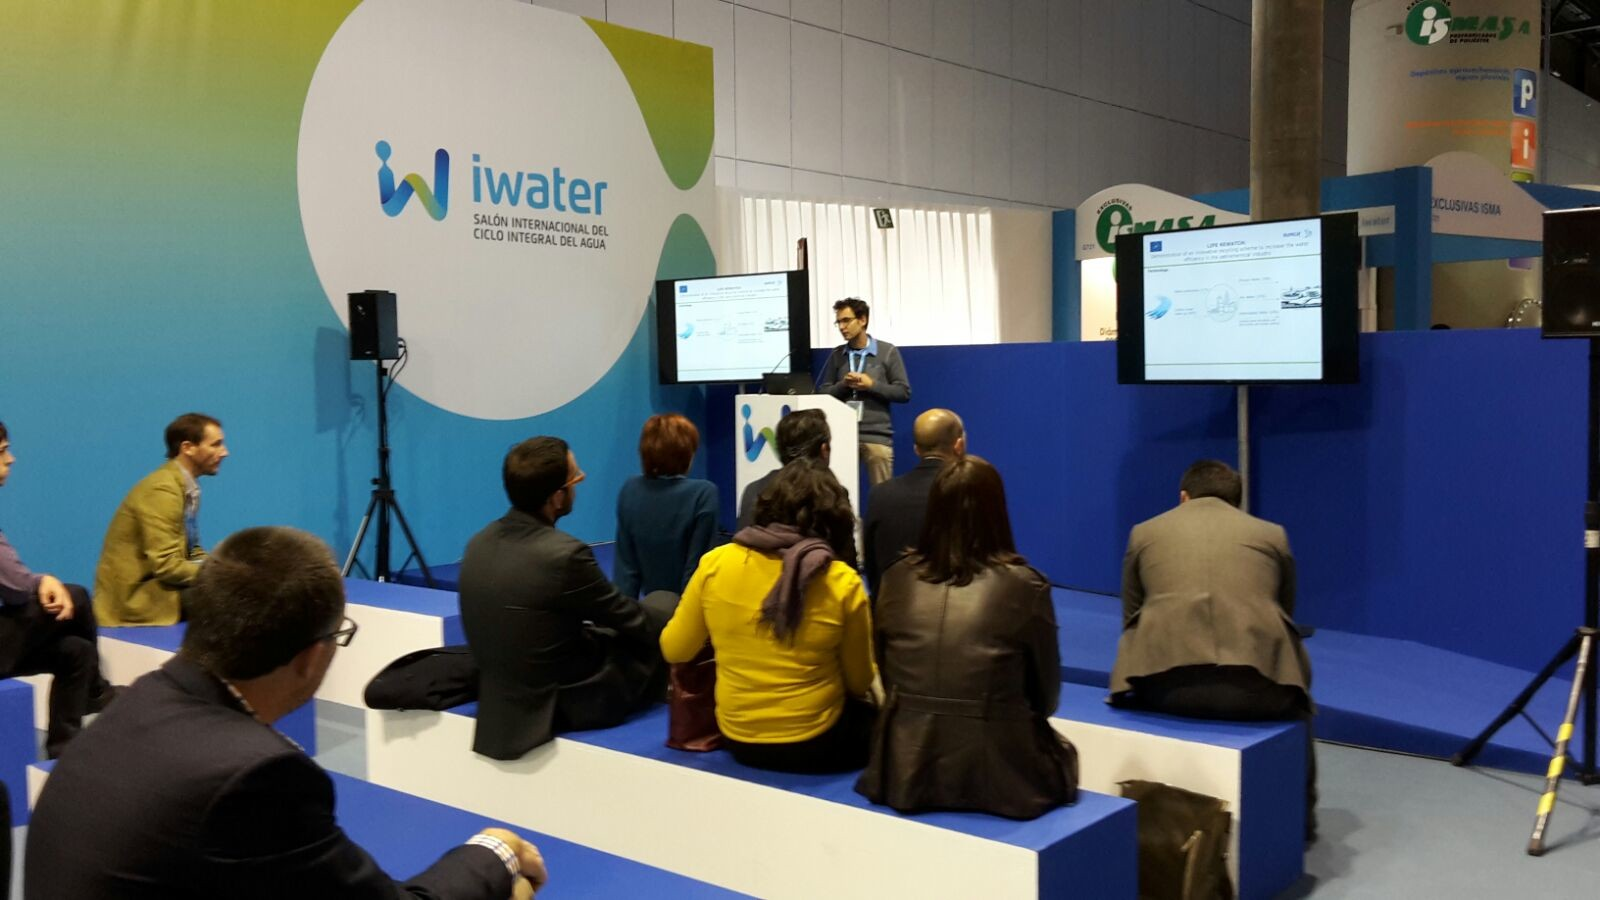 iWater_1